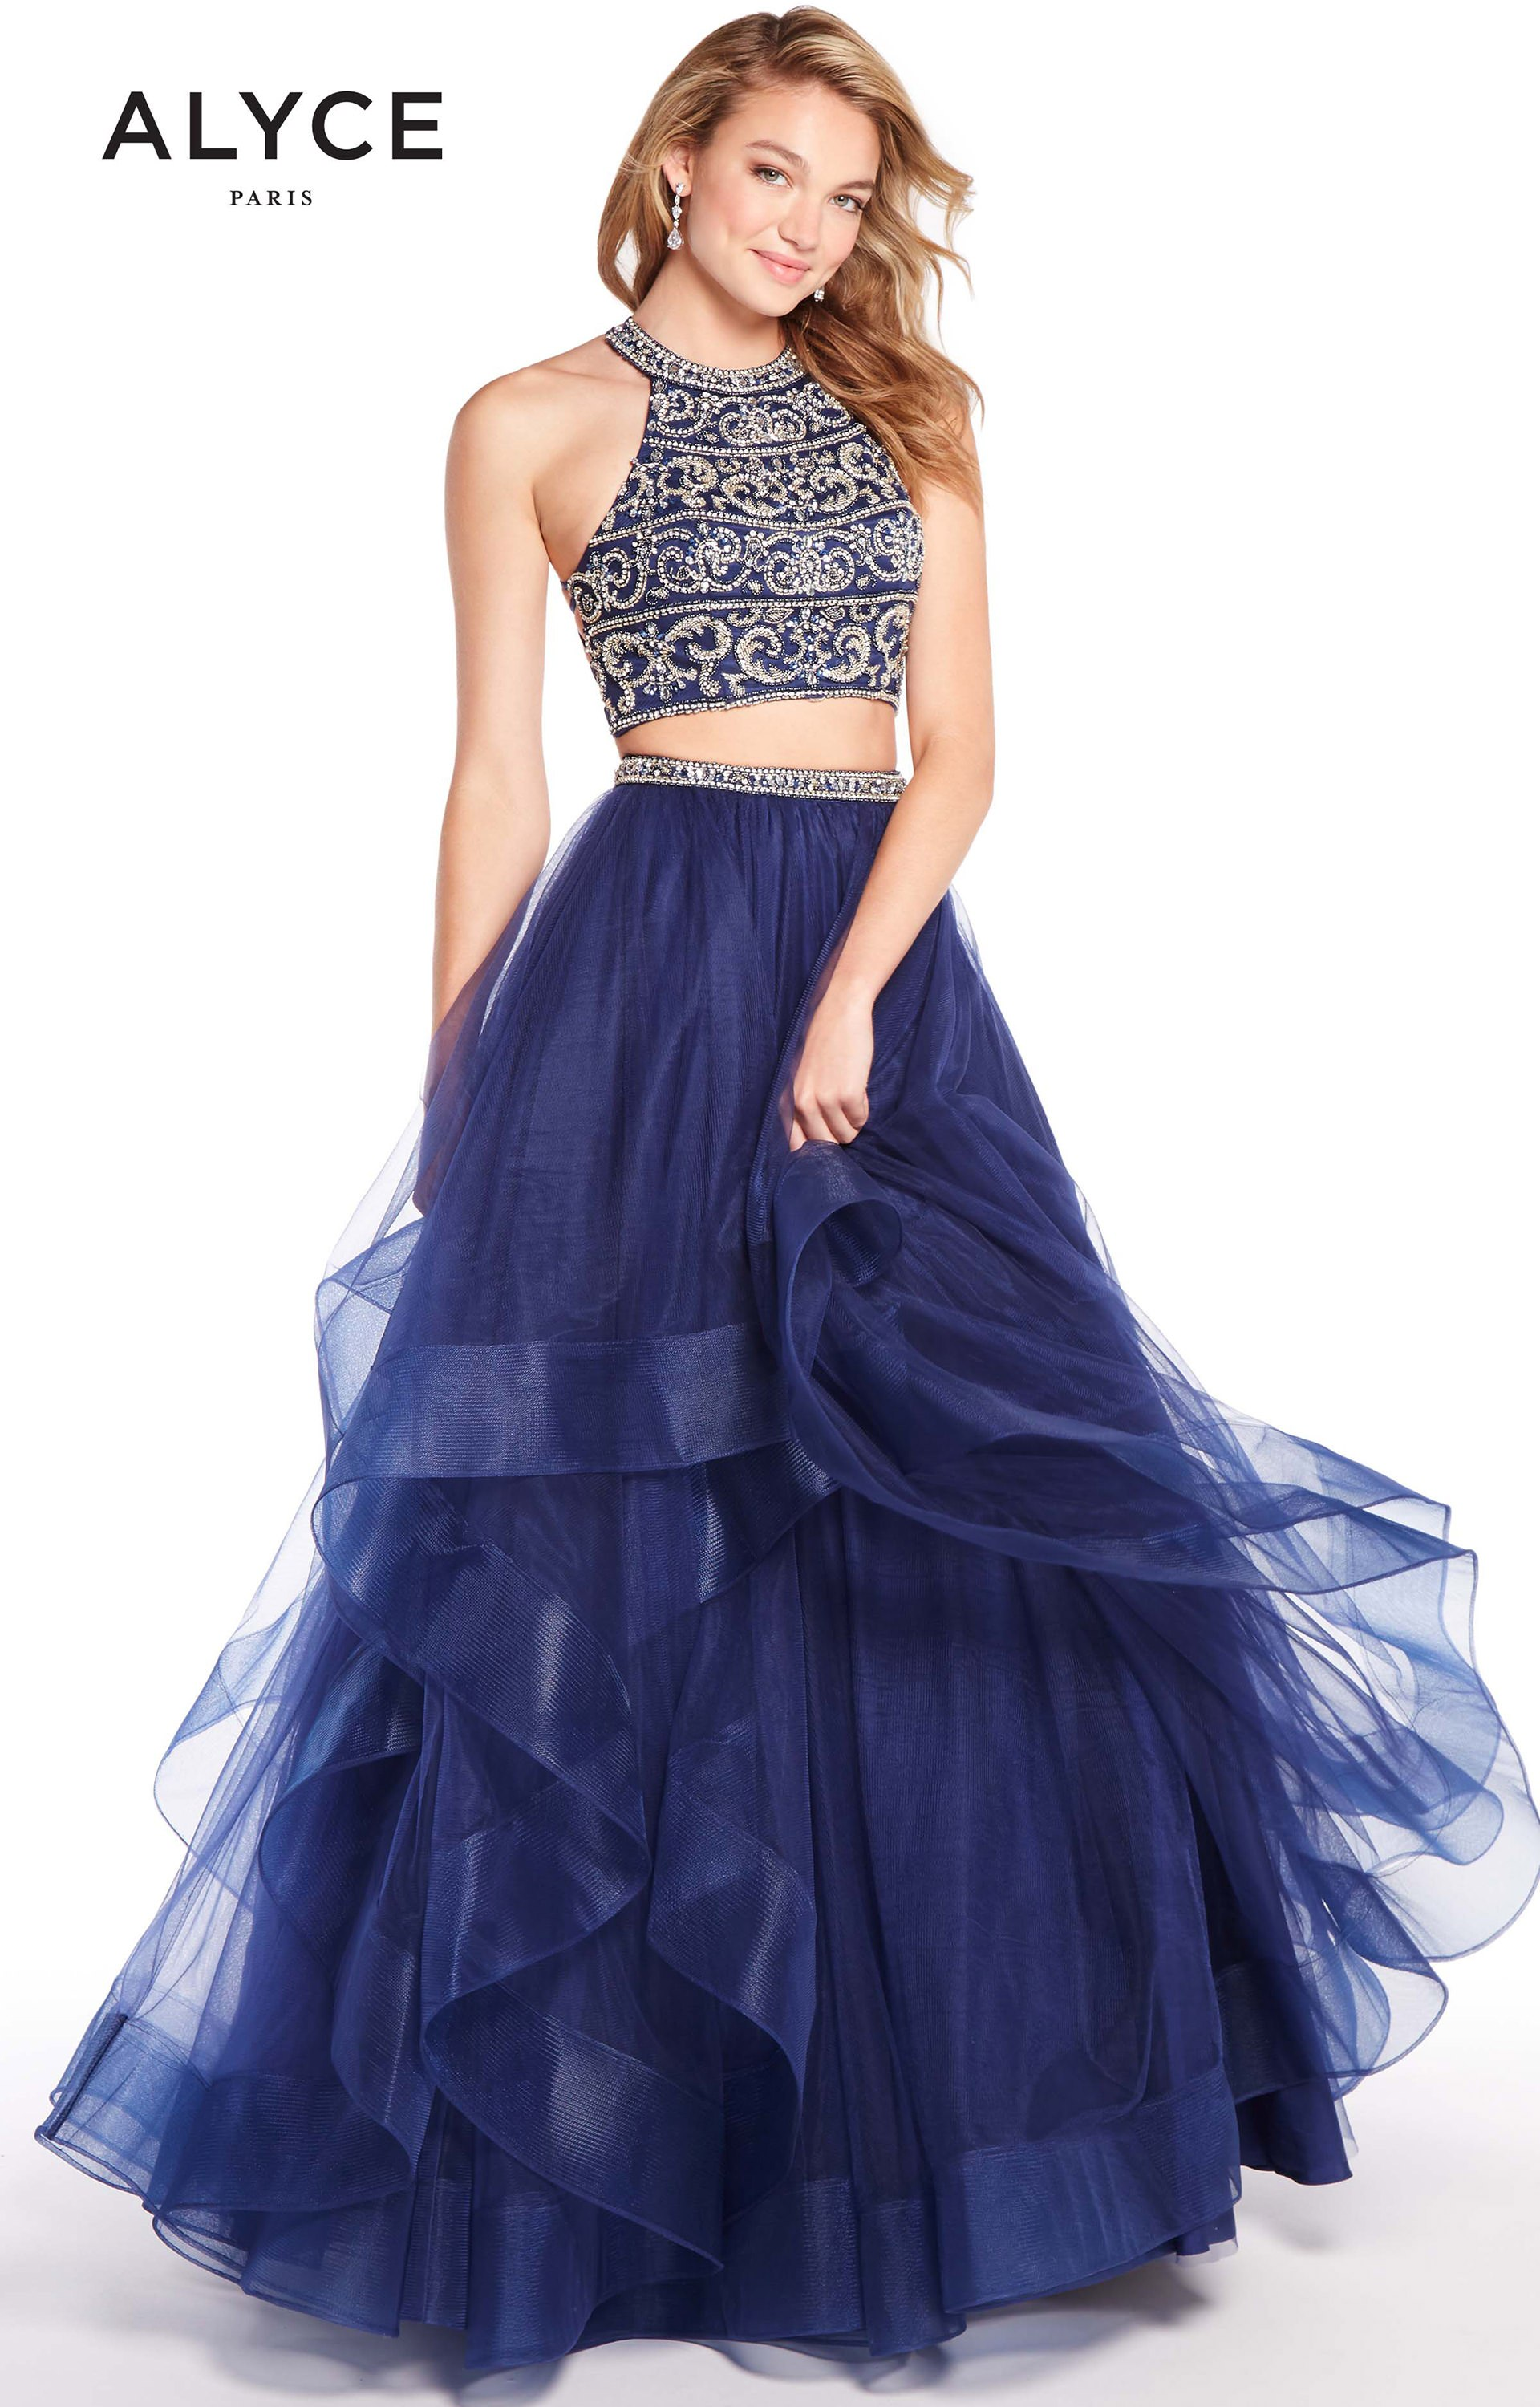 Alyce Paris 60209 - 2 Piece Tulle Ball Gown Prom Dress